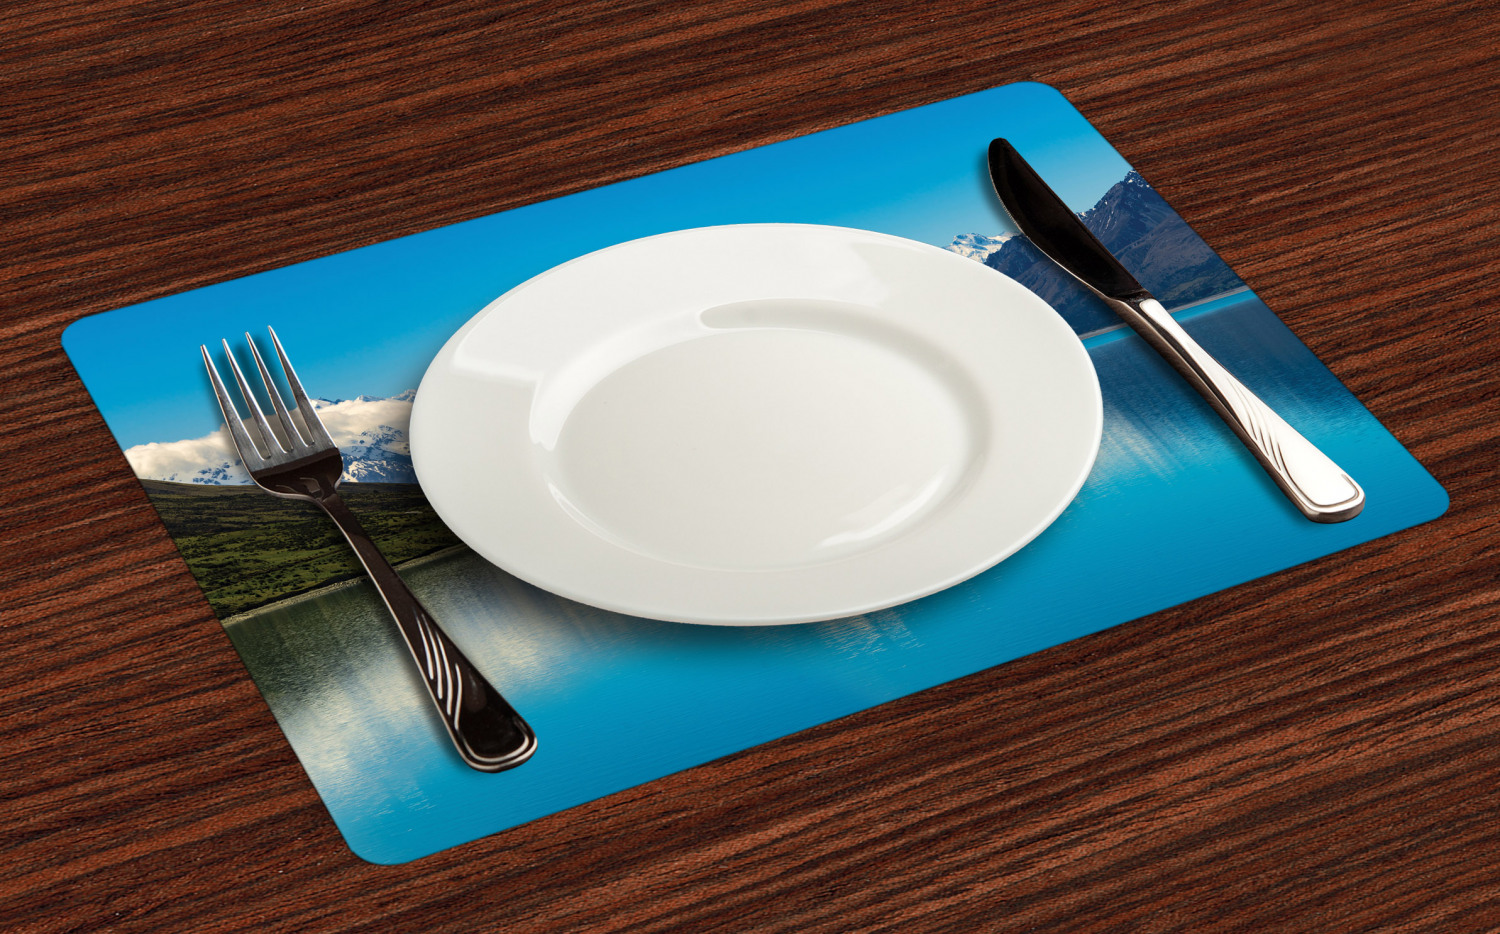 Ambesonne-Fabric-Place-Mats-Set-of-4-Placemats-for-Dining-Room-and-Kitchen-Table thumbnail 129